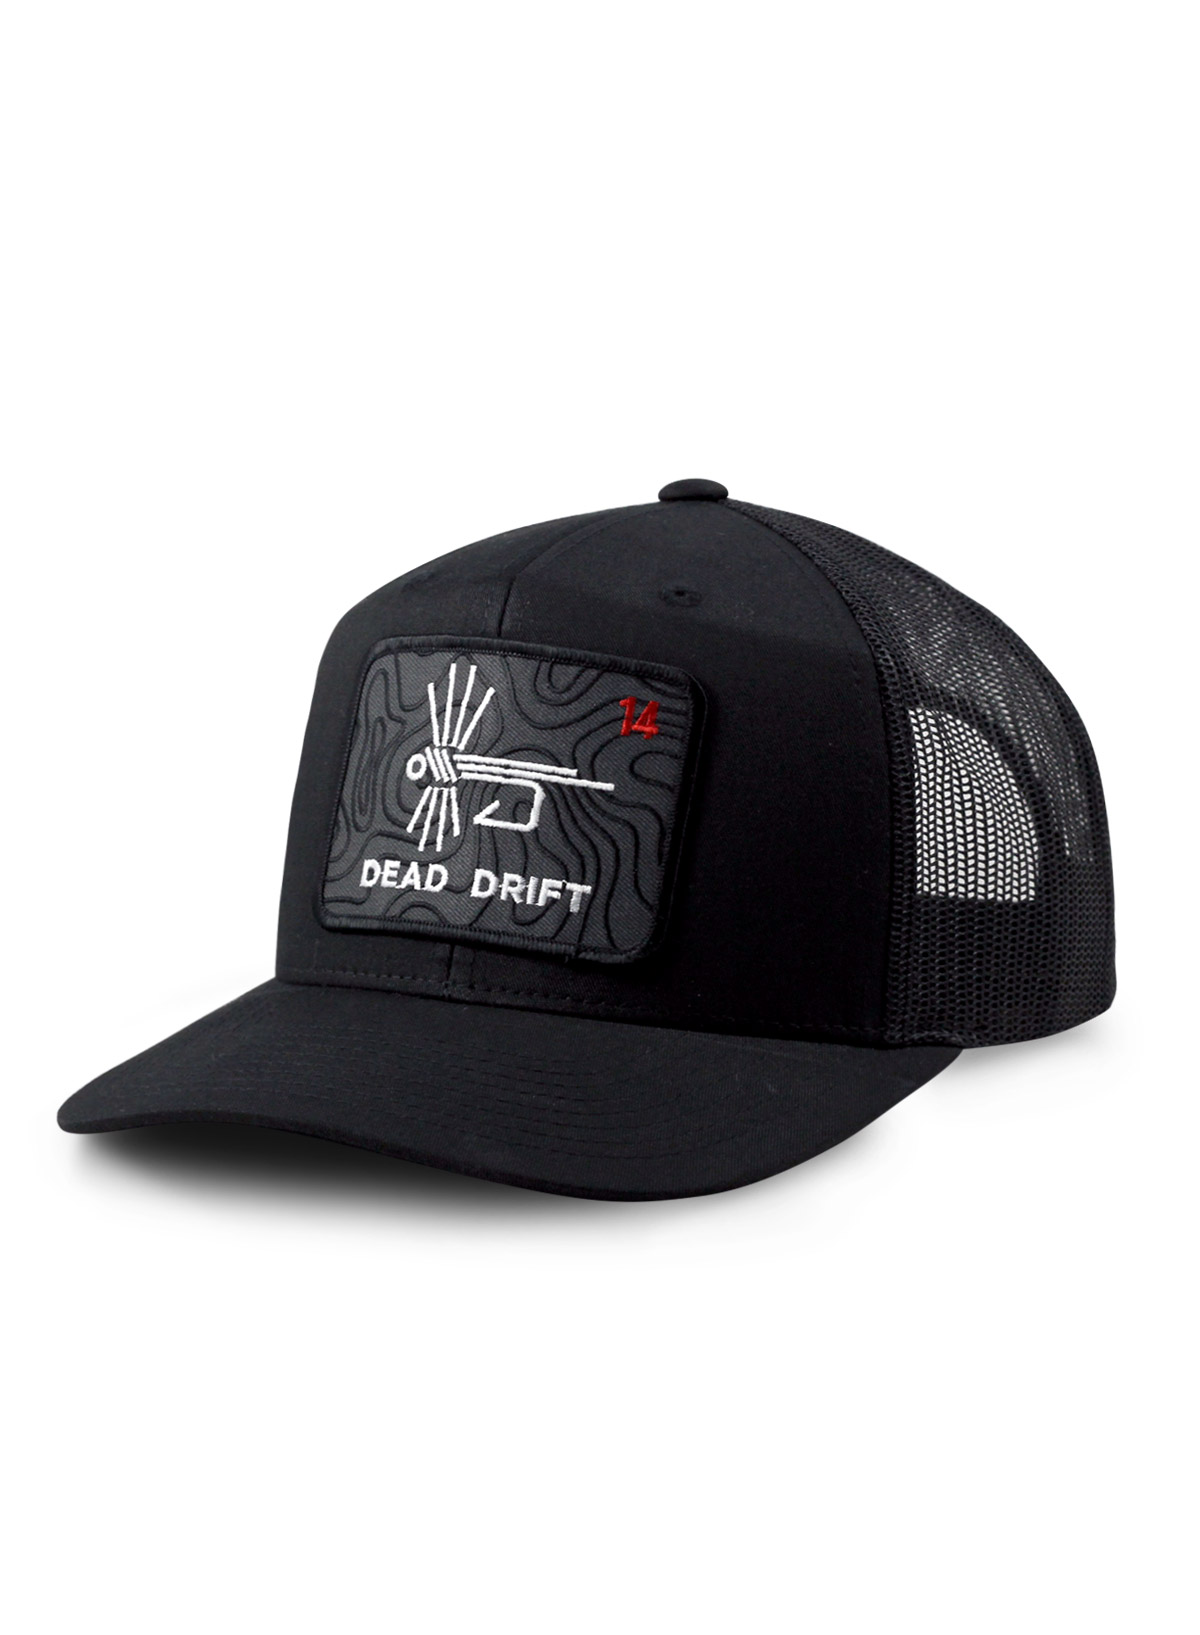 Dead-Drift-Fly-Fishing-Hats-Topo-Fly-Trucker-Black.jpg